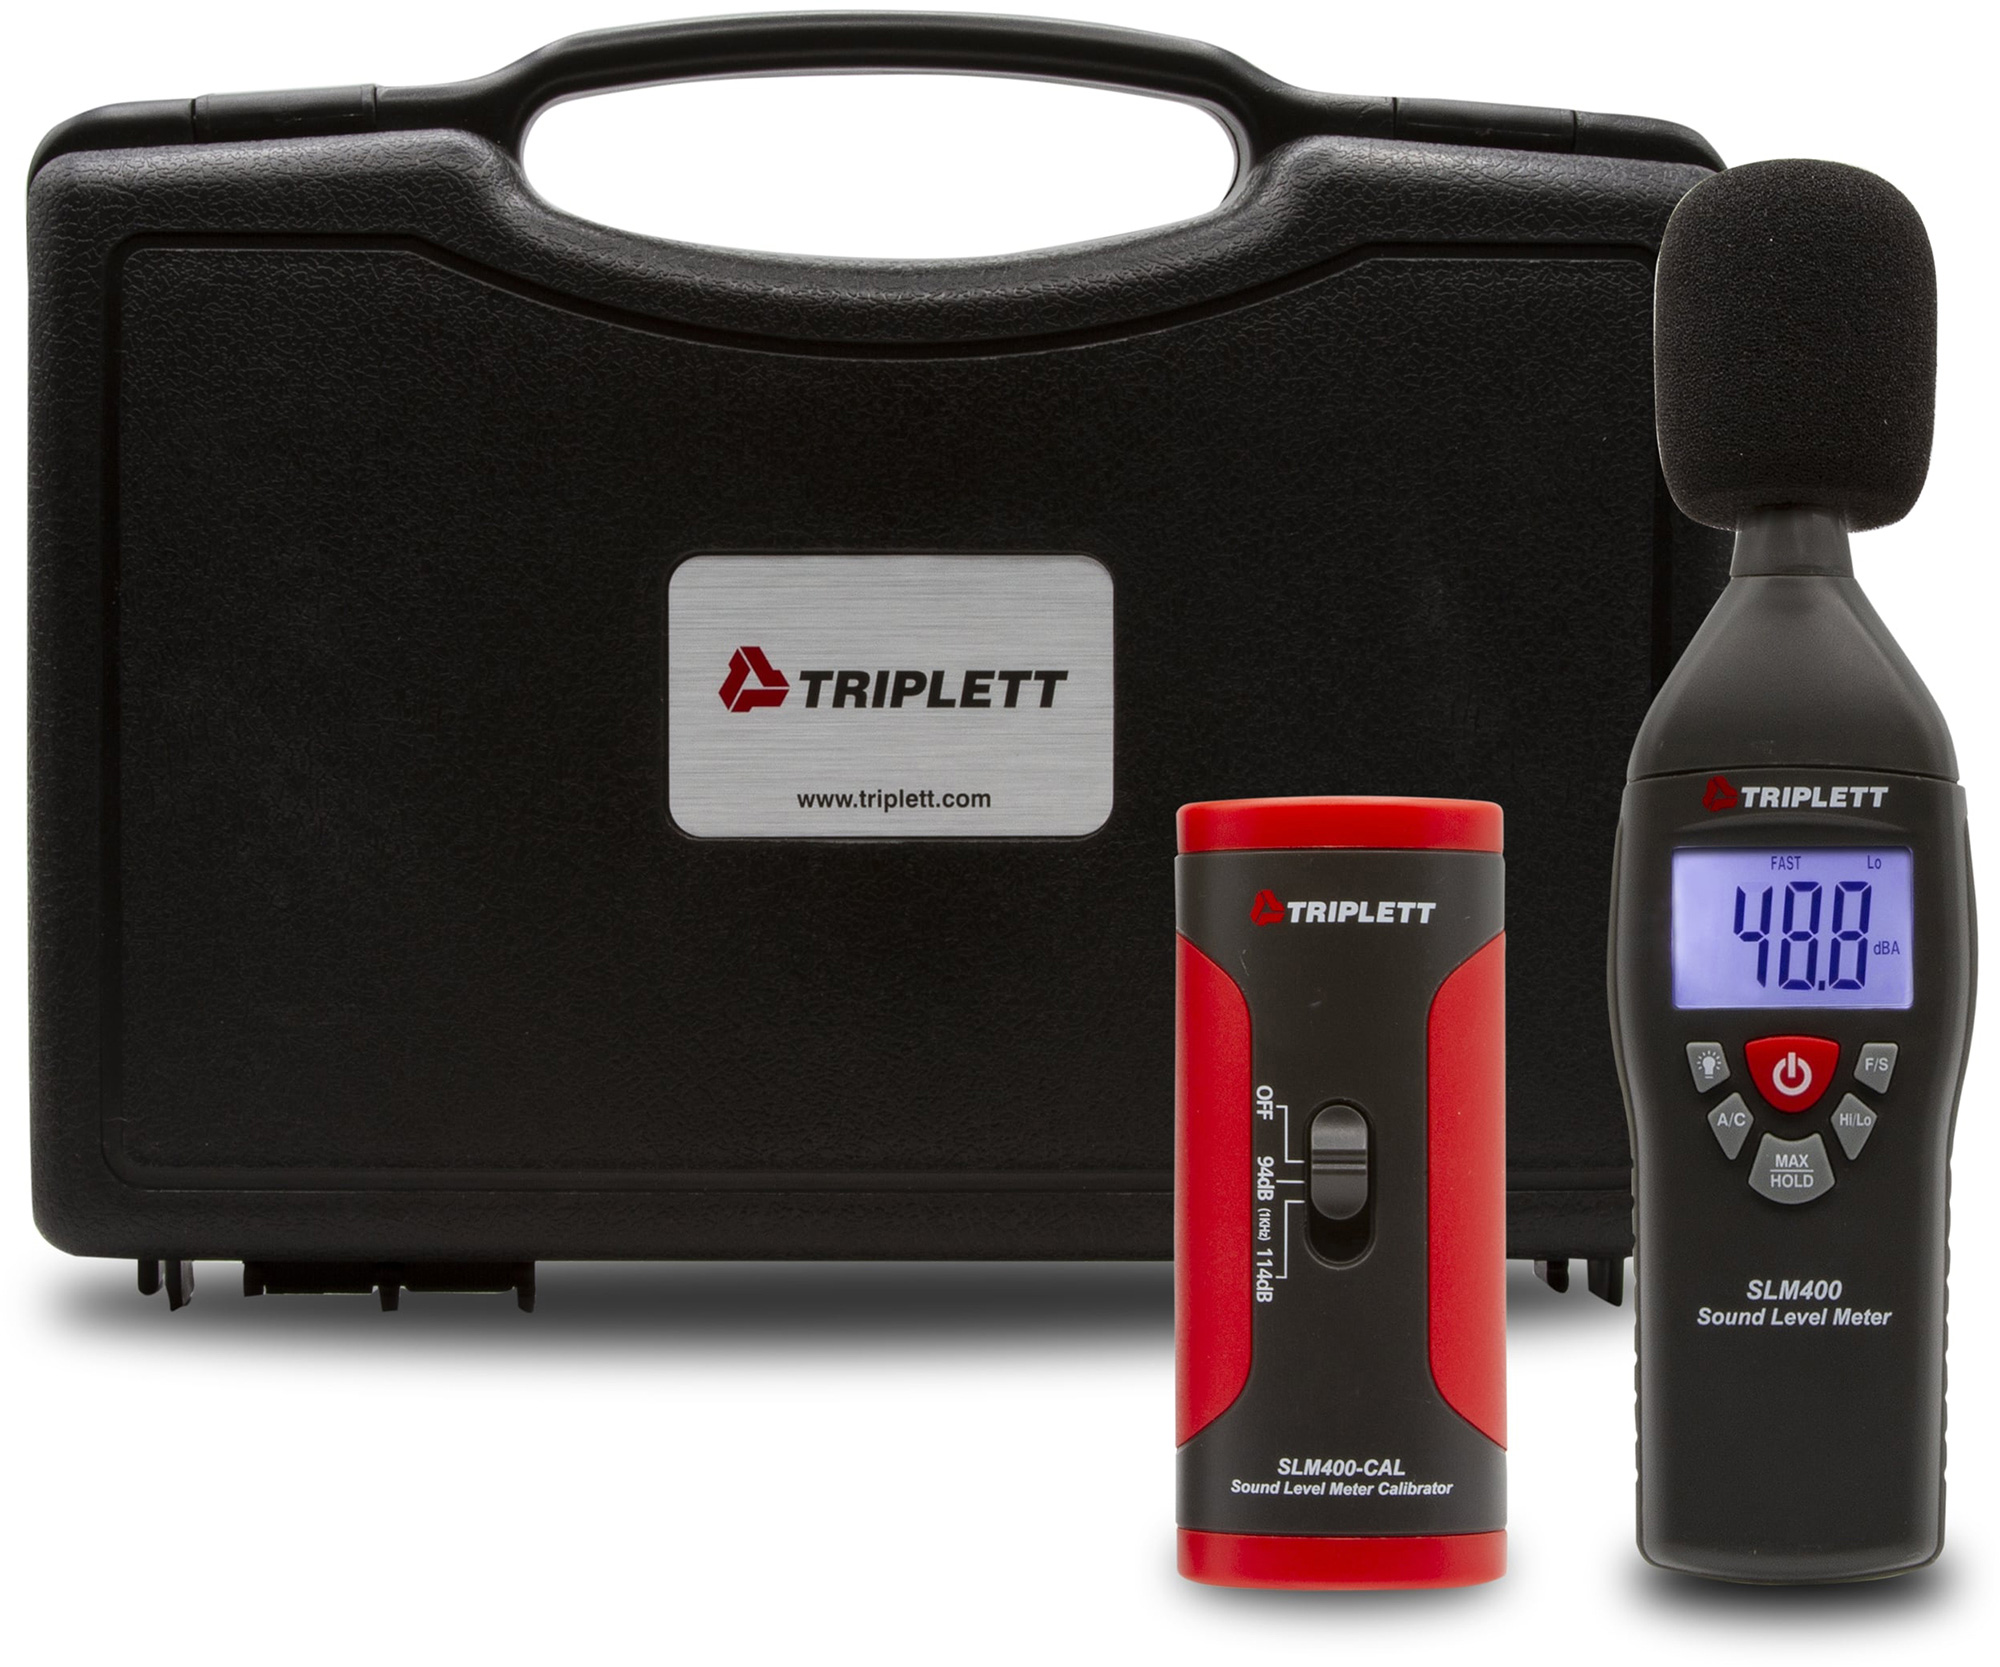 Triplett SLM400-KIT Sound Level Meter / Calibrator Kit Includes SLM400 & Calibrator with Selectable 94dB and 114dB @1kHz TRIPL-SLM400-KIT